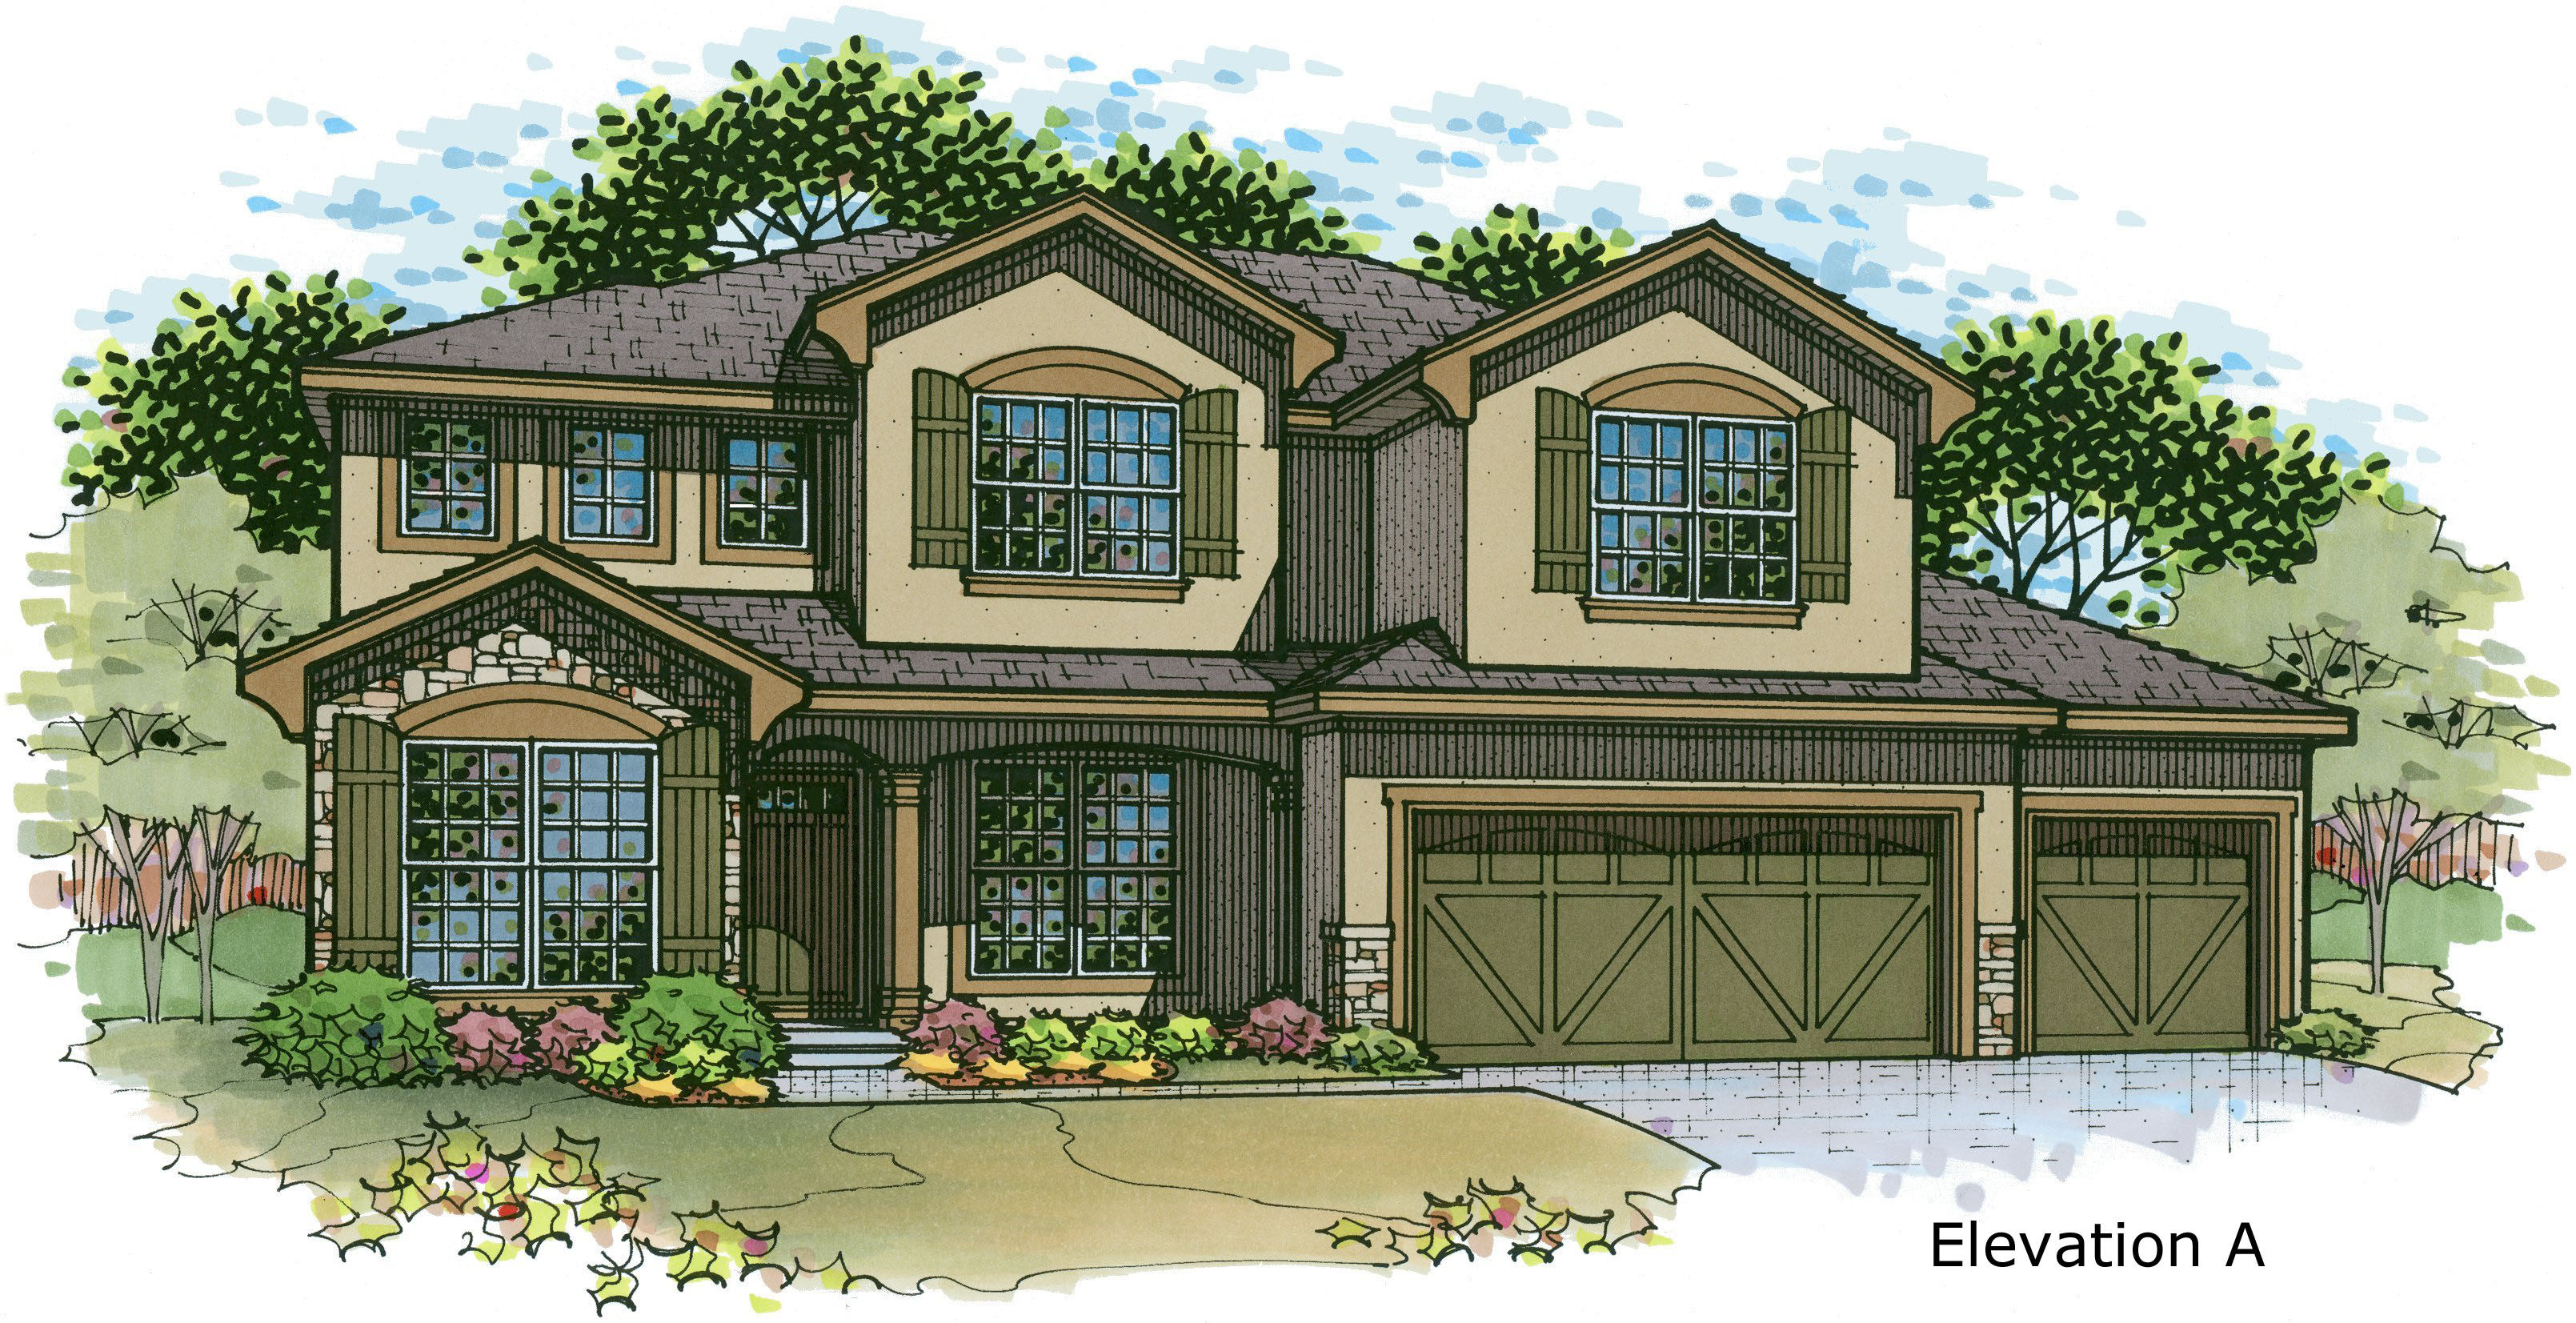 Irving elev. A color rendering